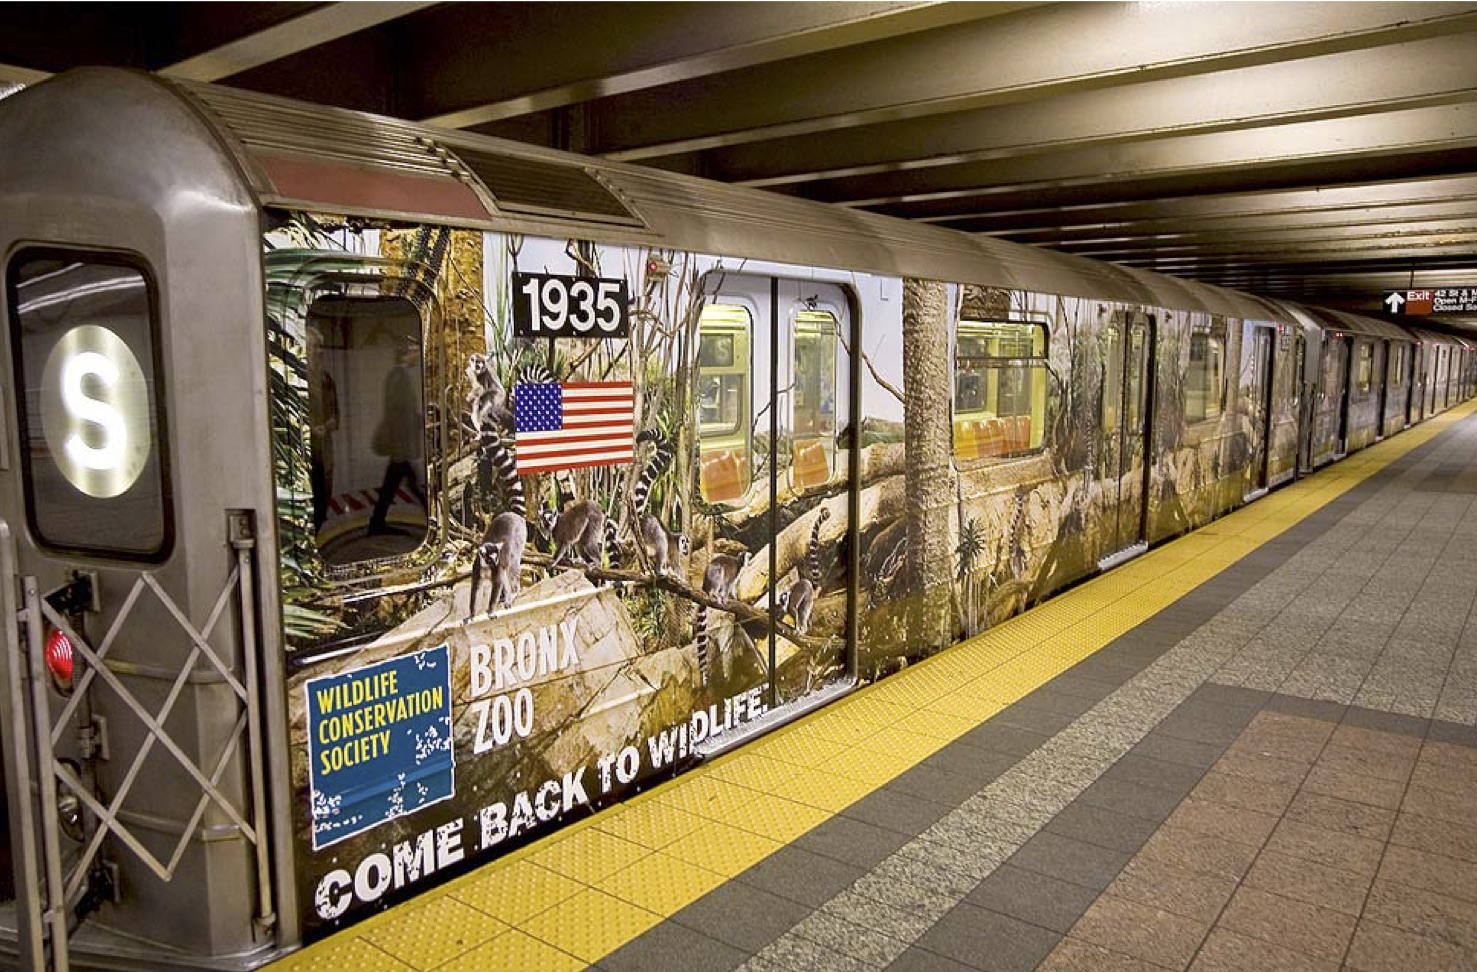 """""""Come back to wildlife"""" subway ad for Bronx Zoo"""